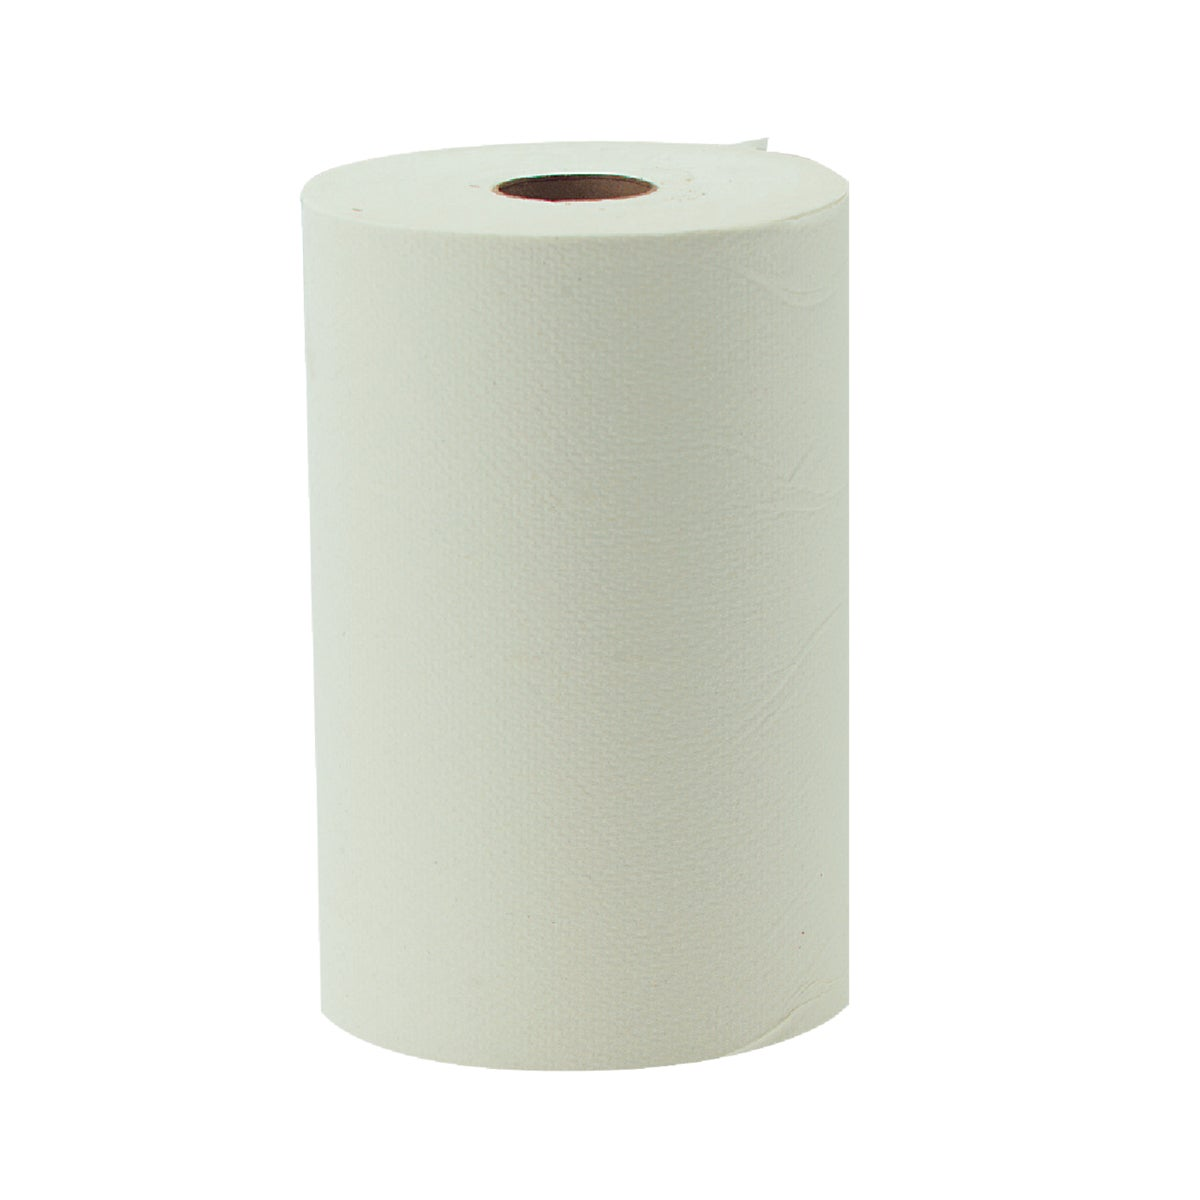 HARD ROLL PAPER TOWELS